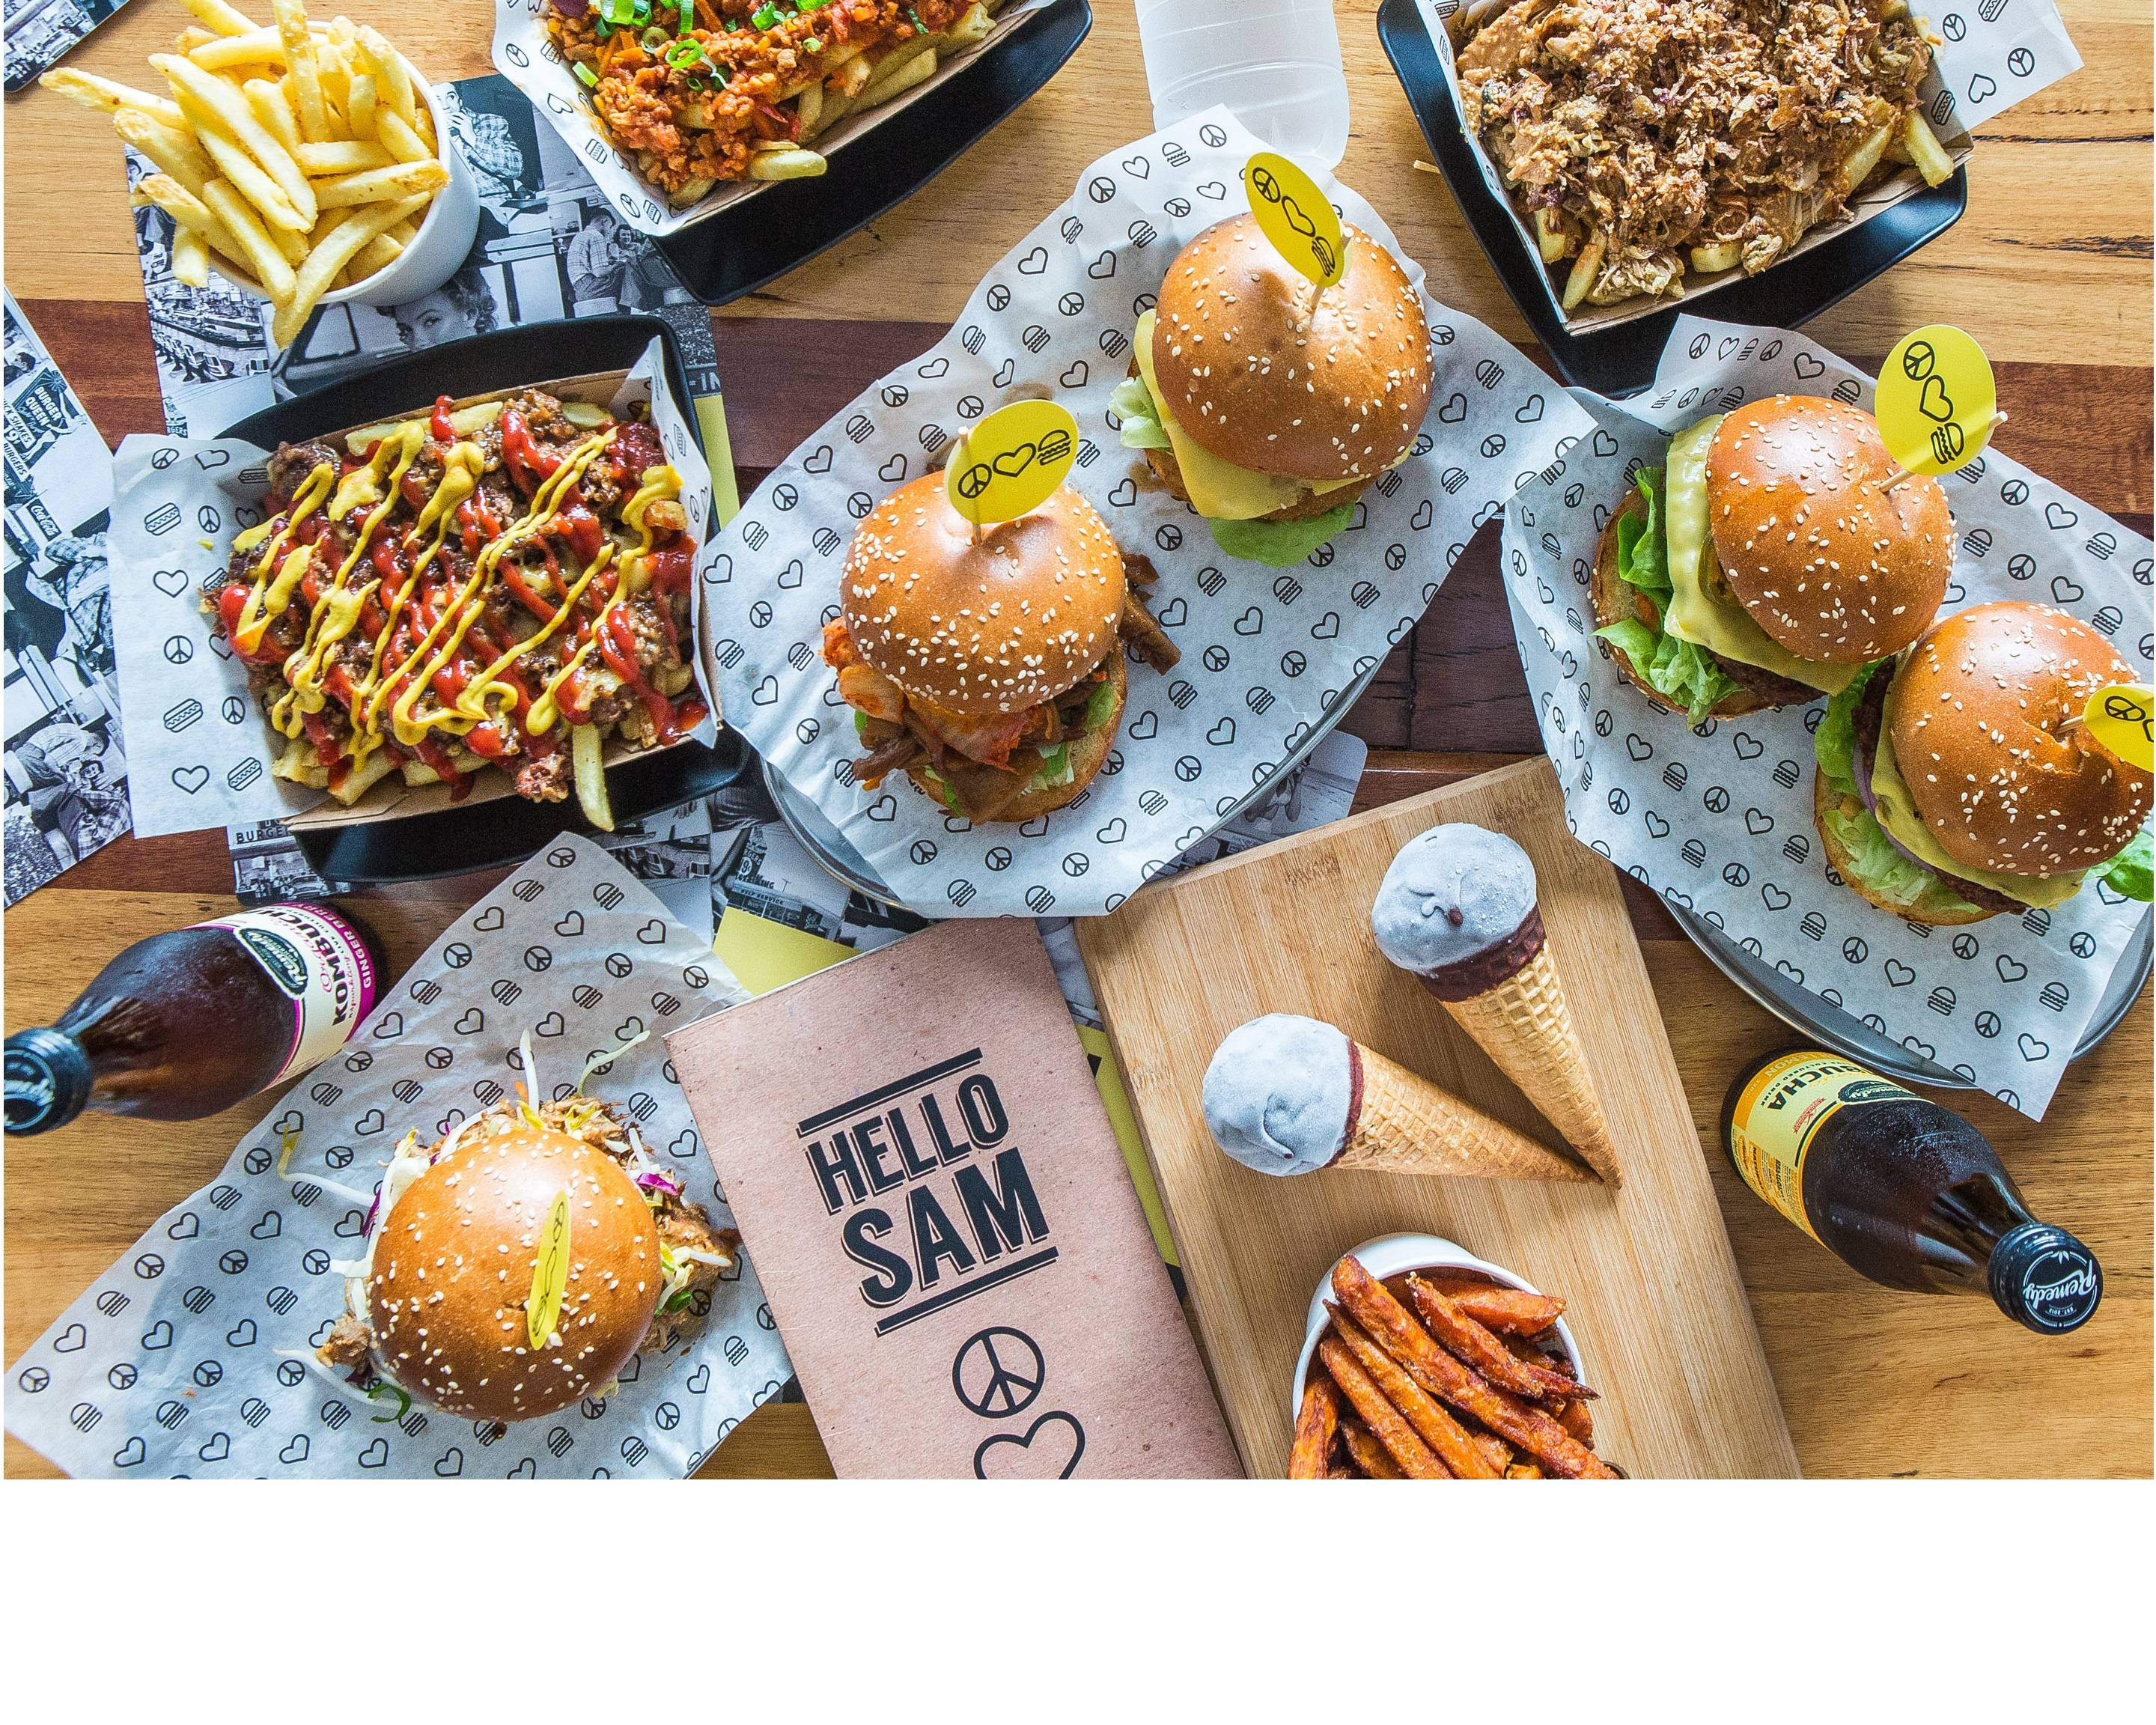 Peace Love Burgers (By HELLO SAM) Delivery | South Yarra